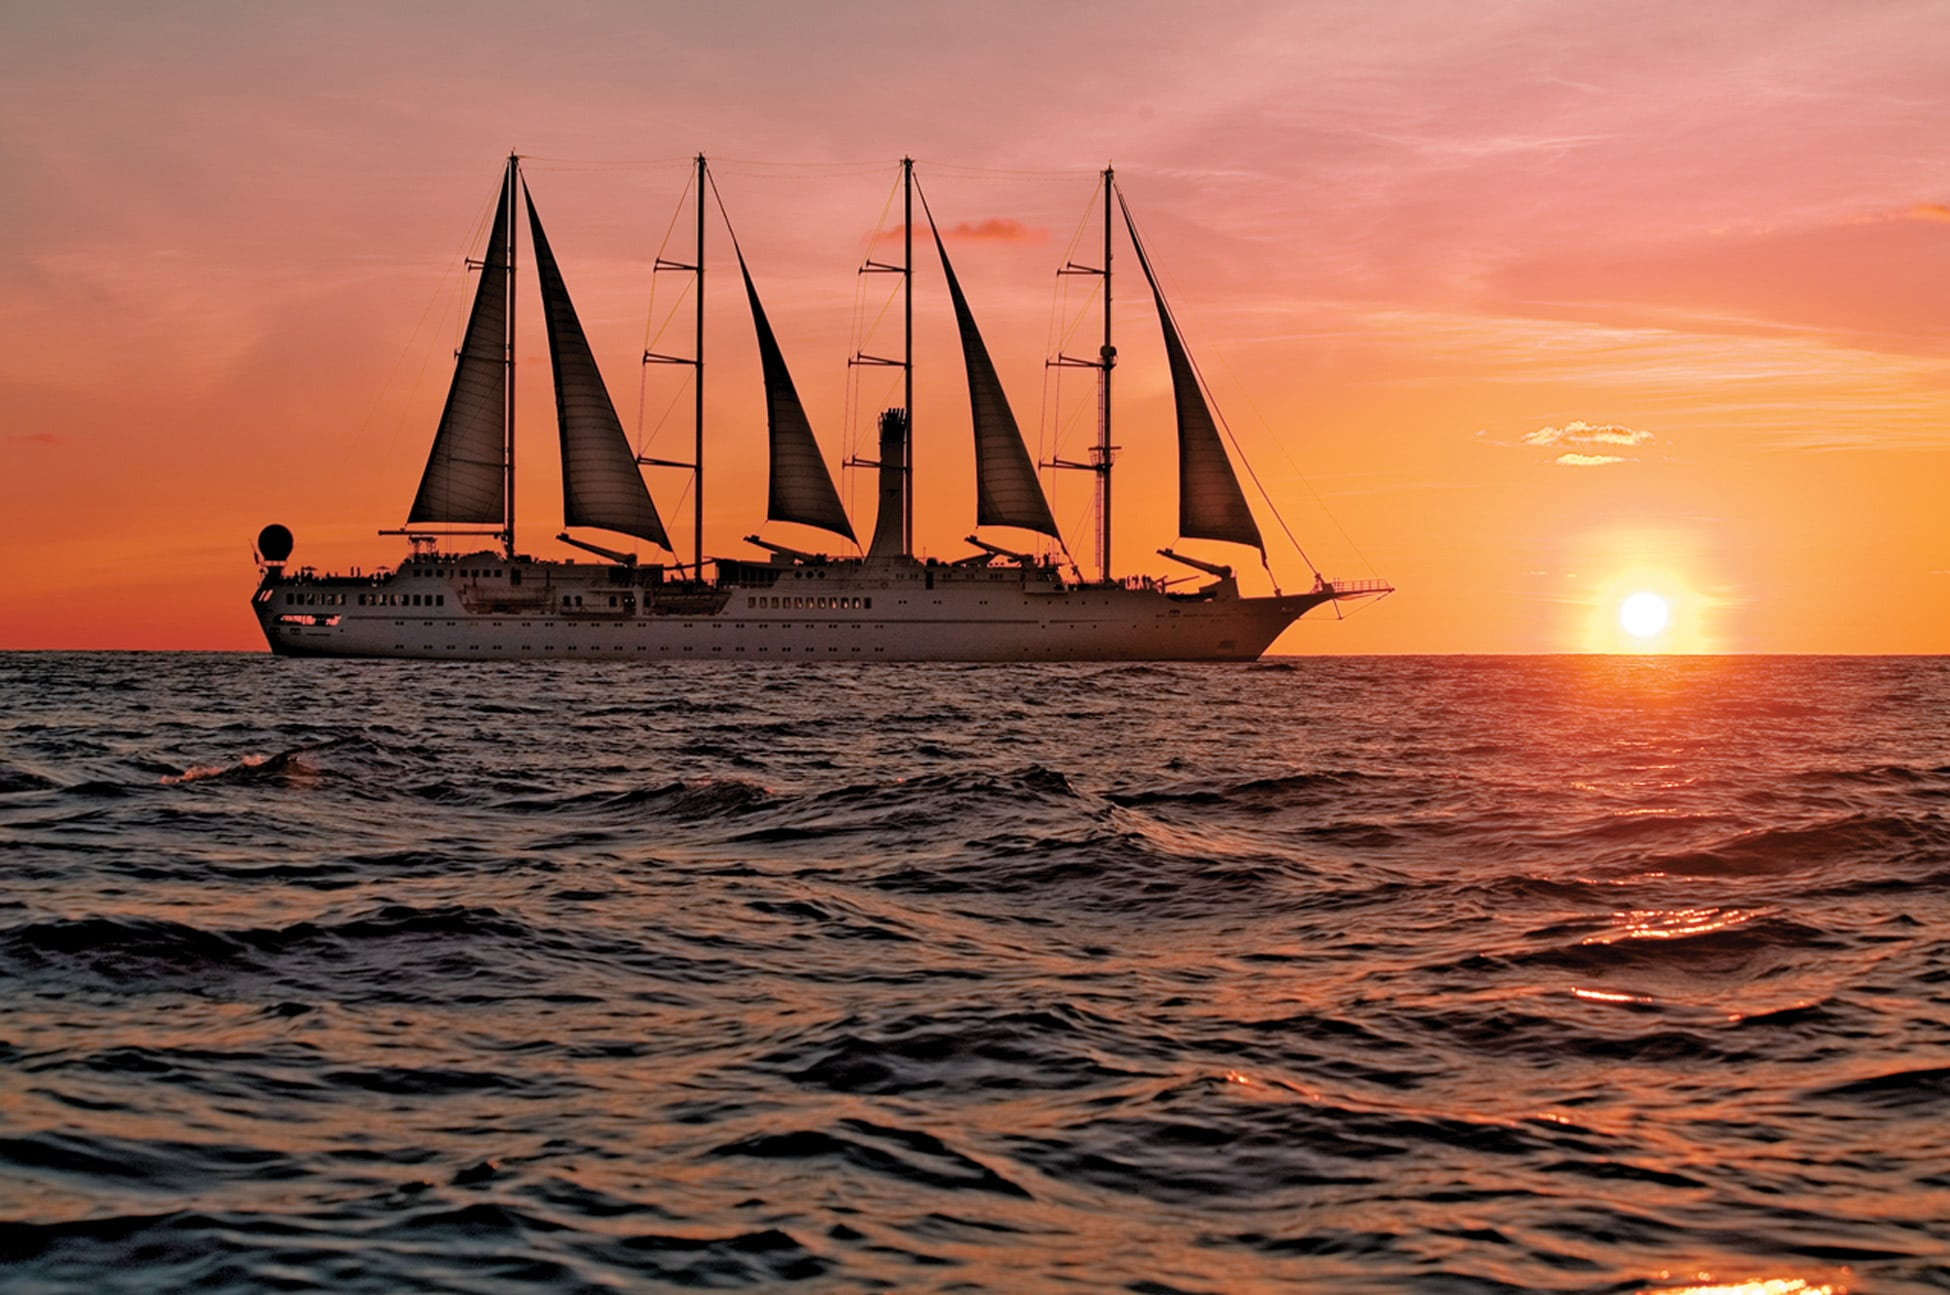 Windstar's yachts are stylish and second-to-none